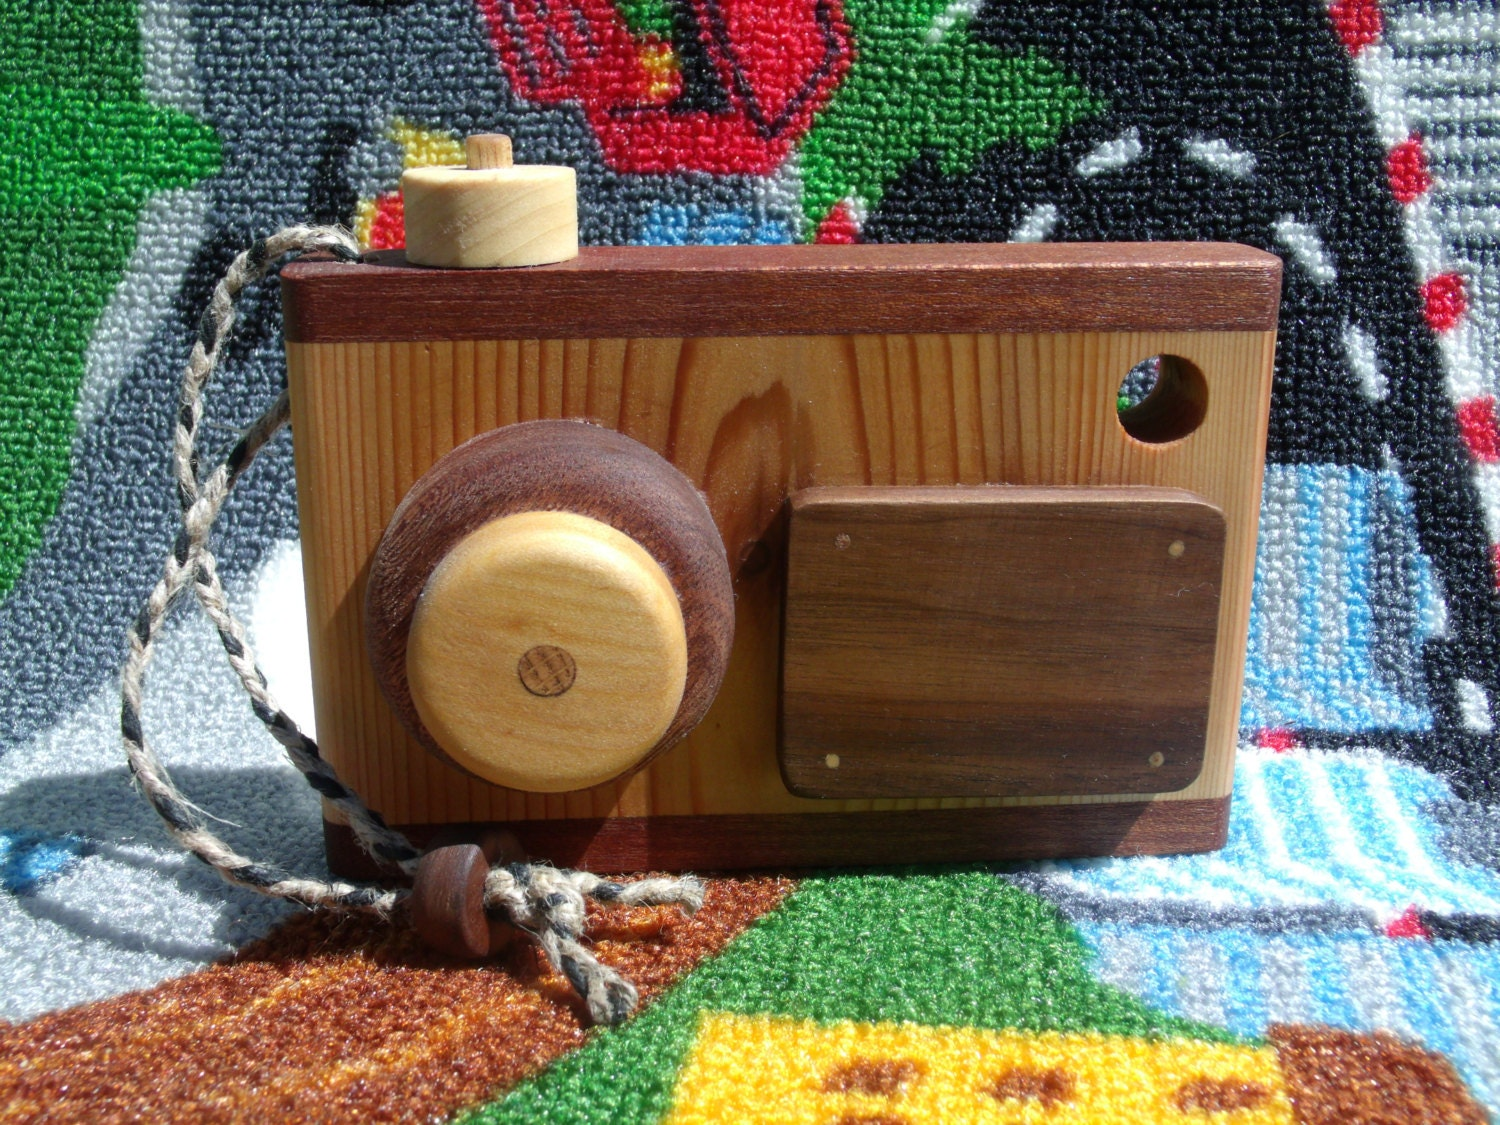 Toys Are Us Wooden Toys : Wooden toy camera handmade pretend play